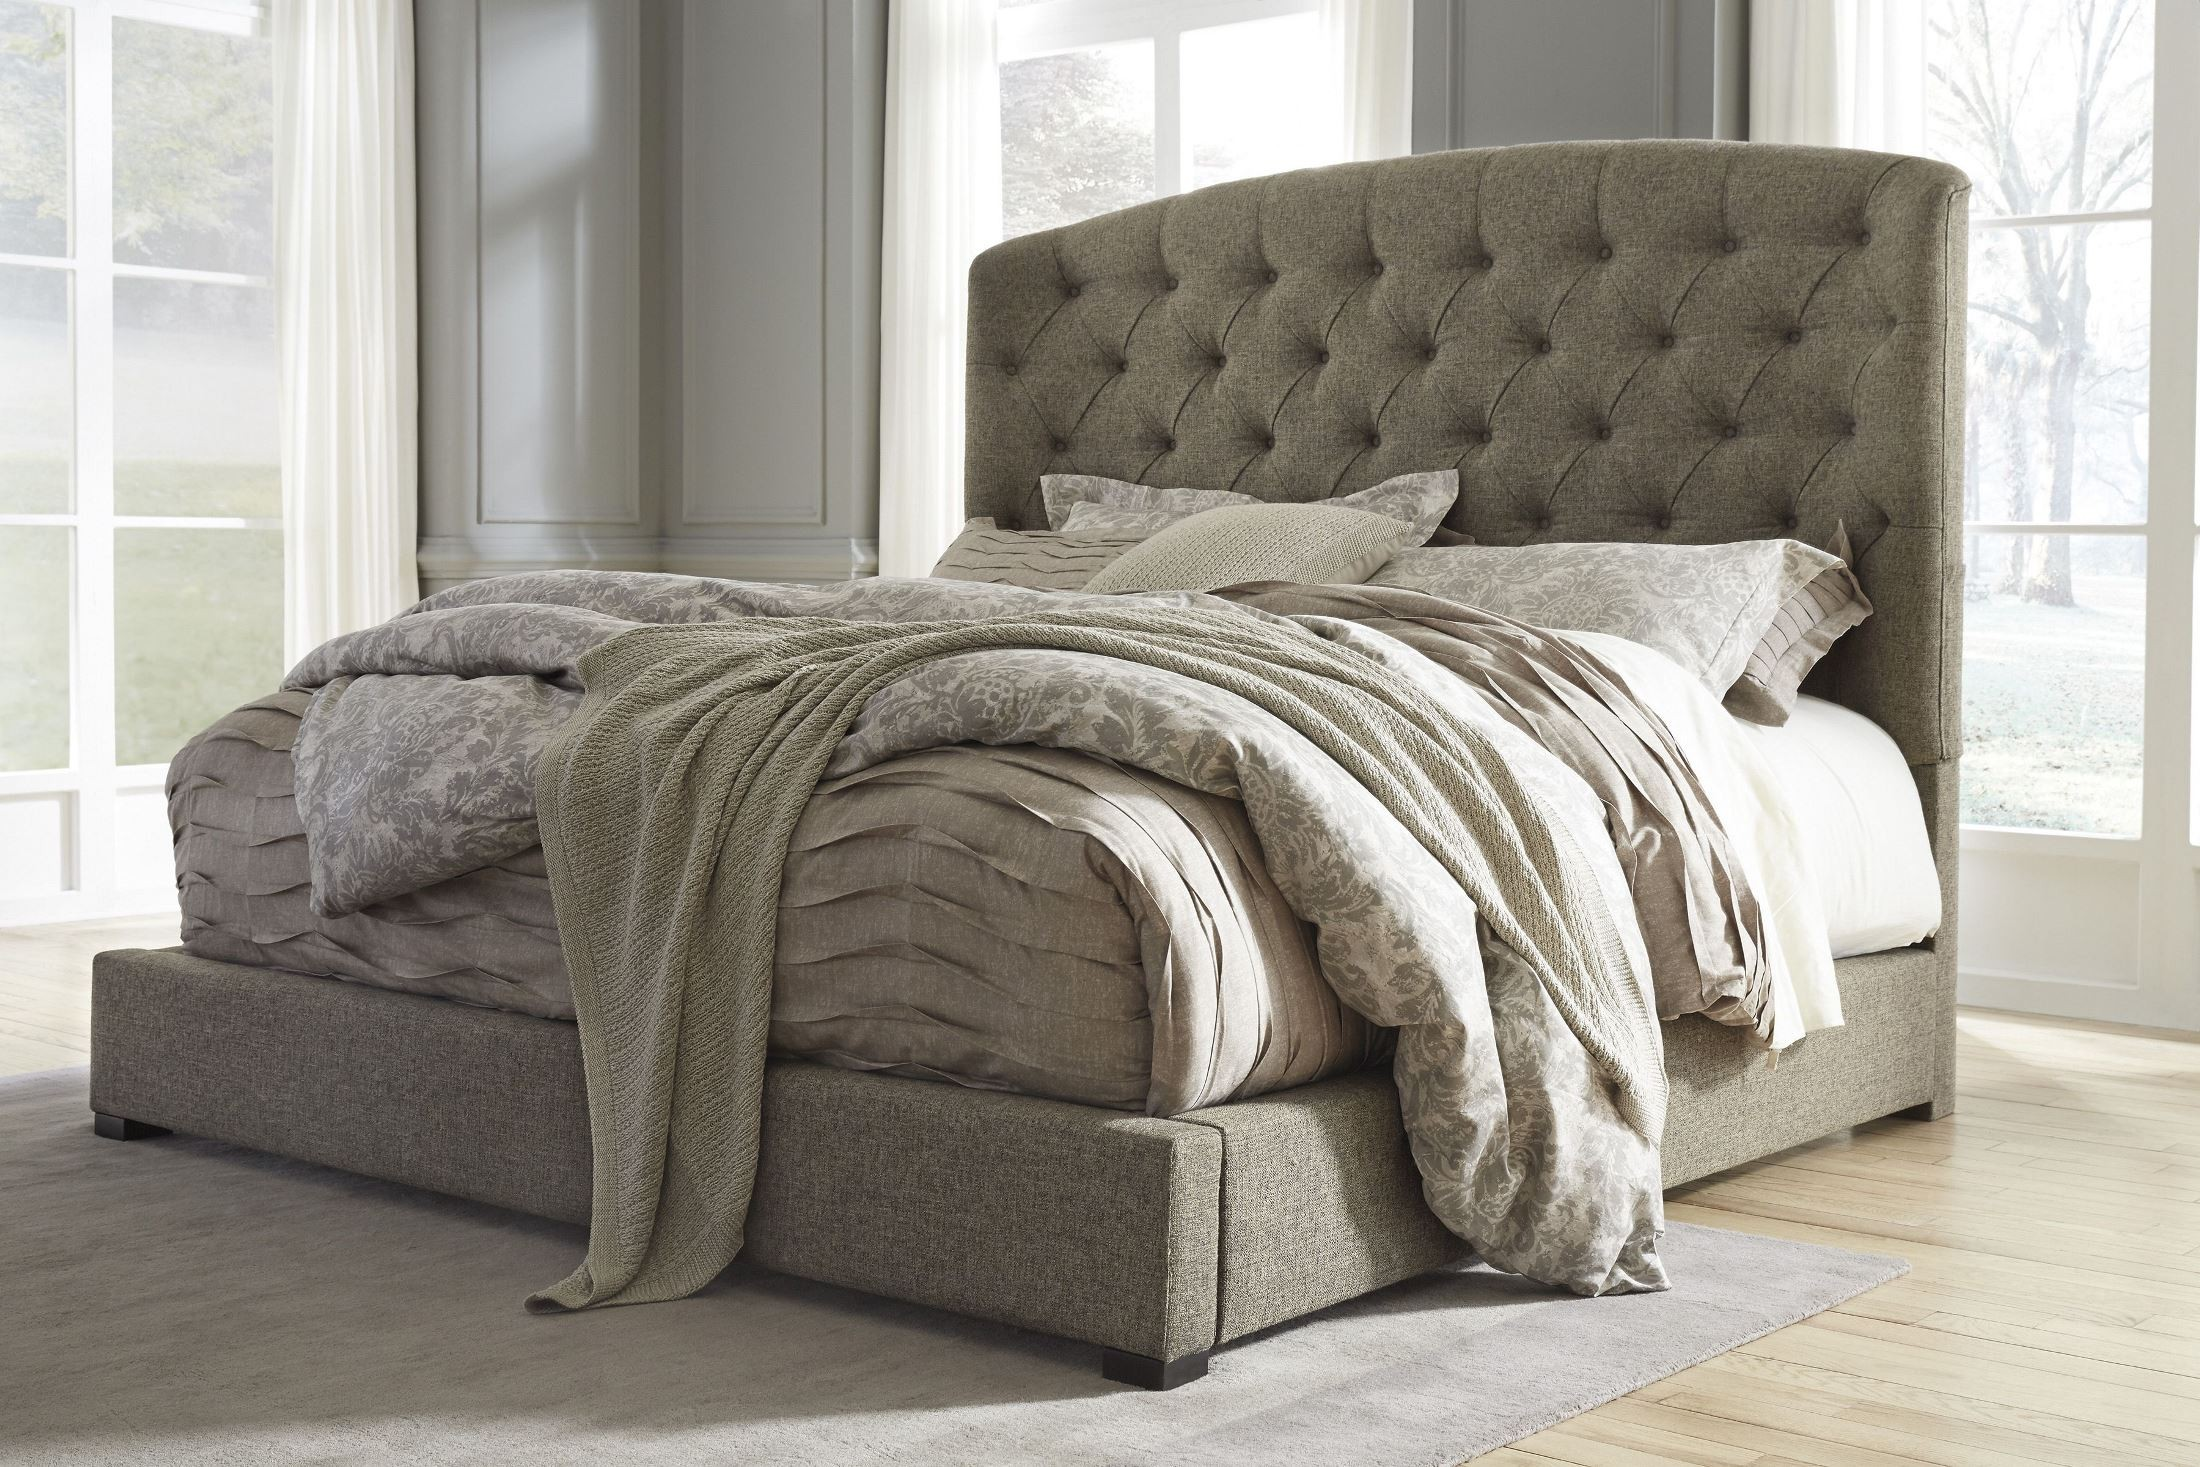 Gerlane Graphite Queen Upholstered Panel Bed from Ashley ...